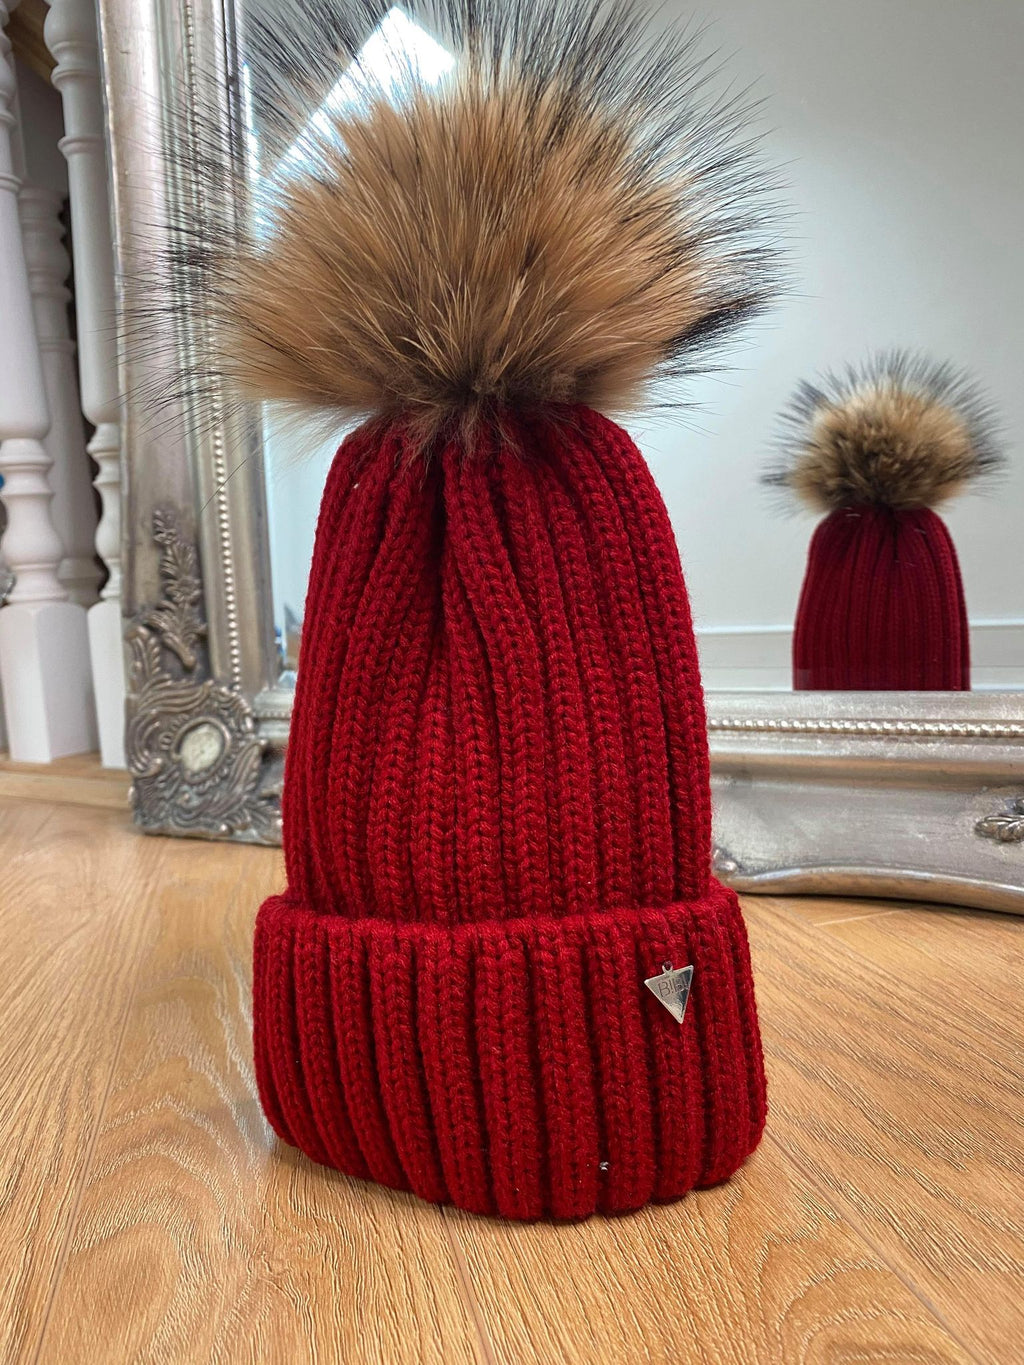 Uptown BIBI Fur Pom Pom Hat - Red/Wine